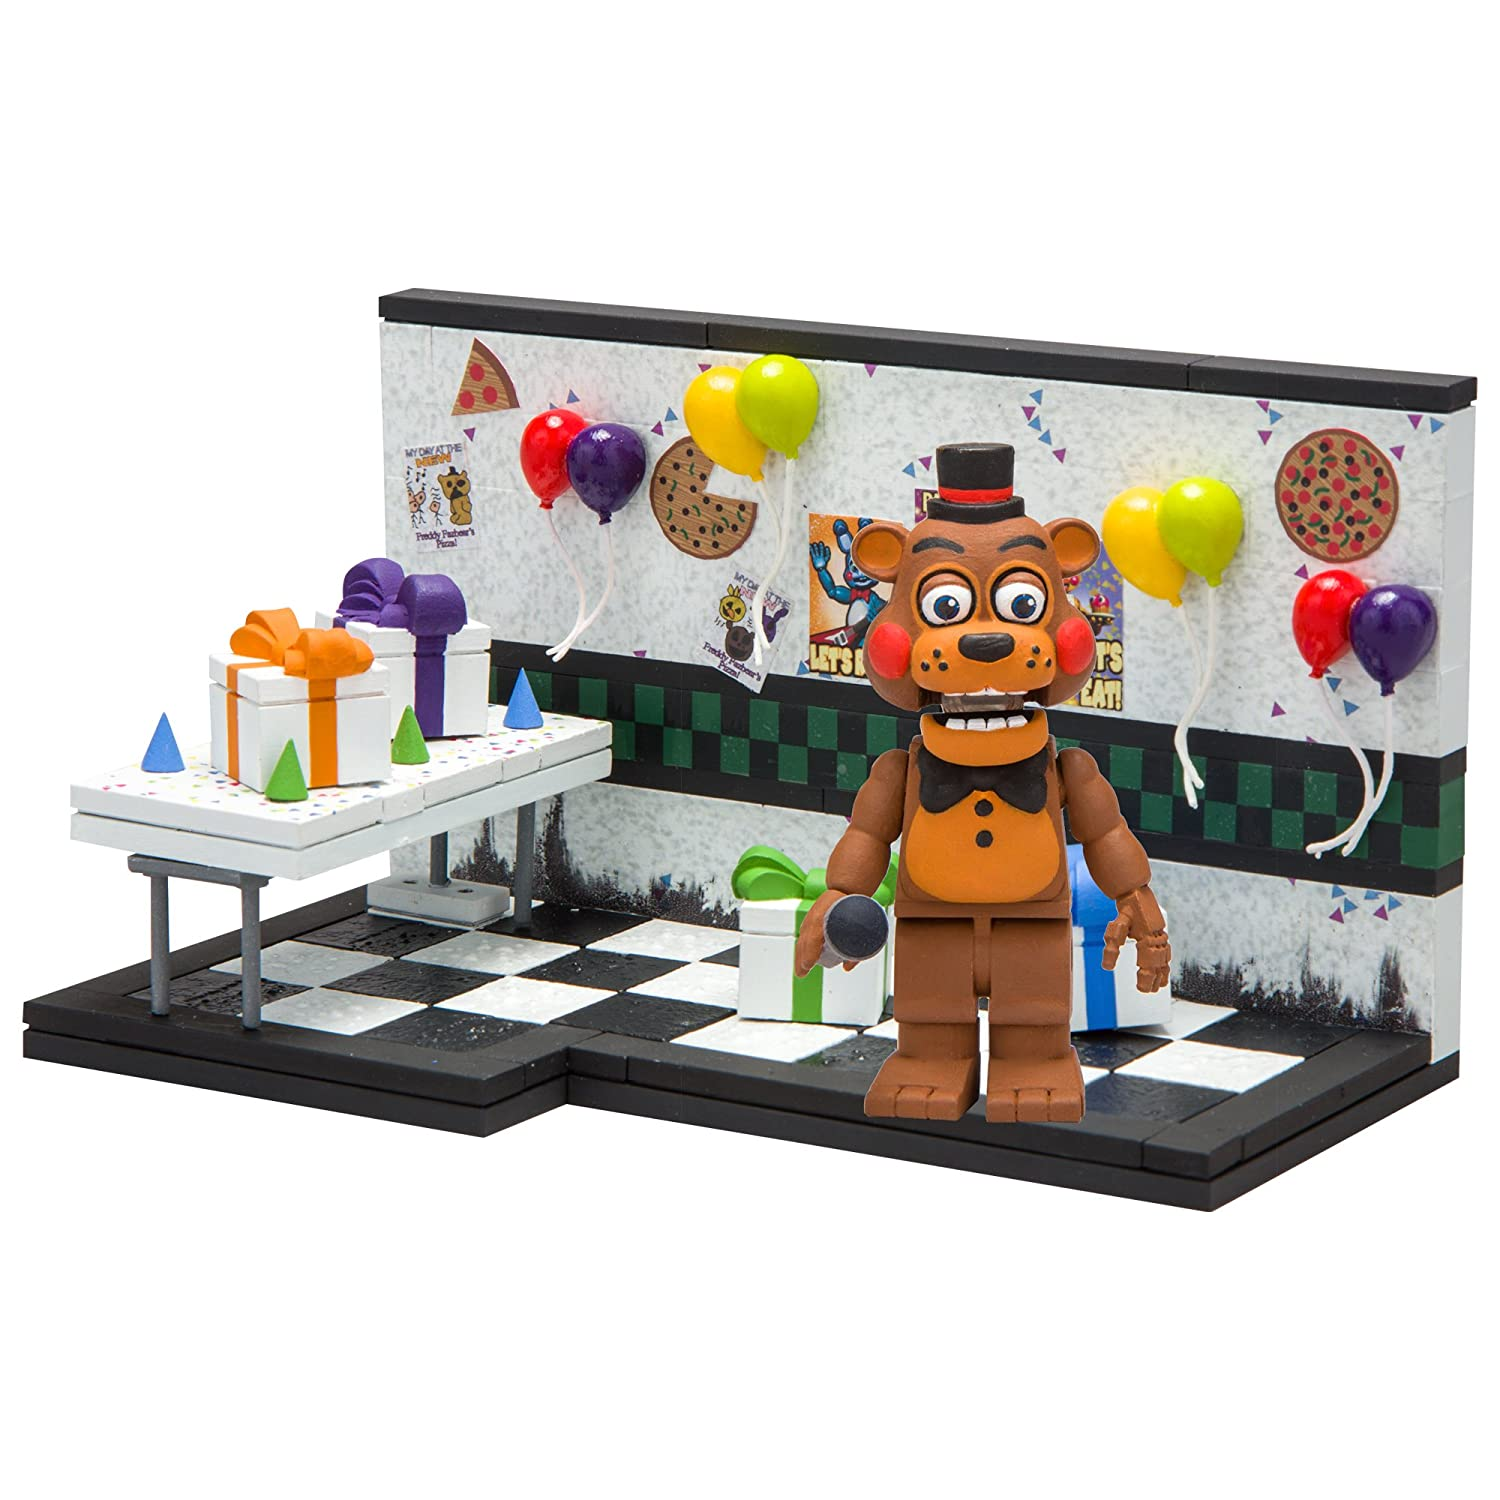 McFarlane Toys Five Nights at Freddys Party Room Construction Building Kit 12692-1